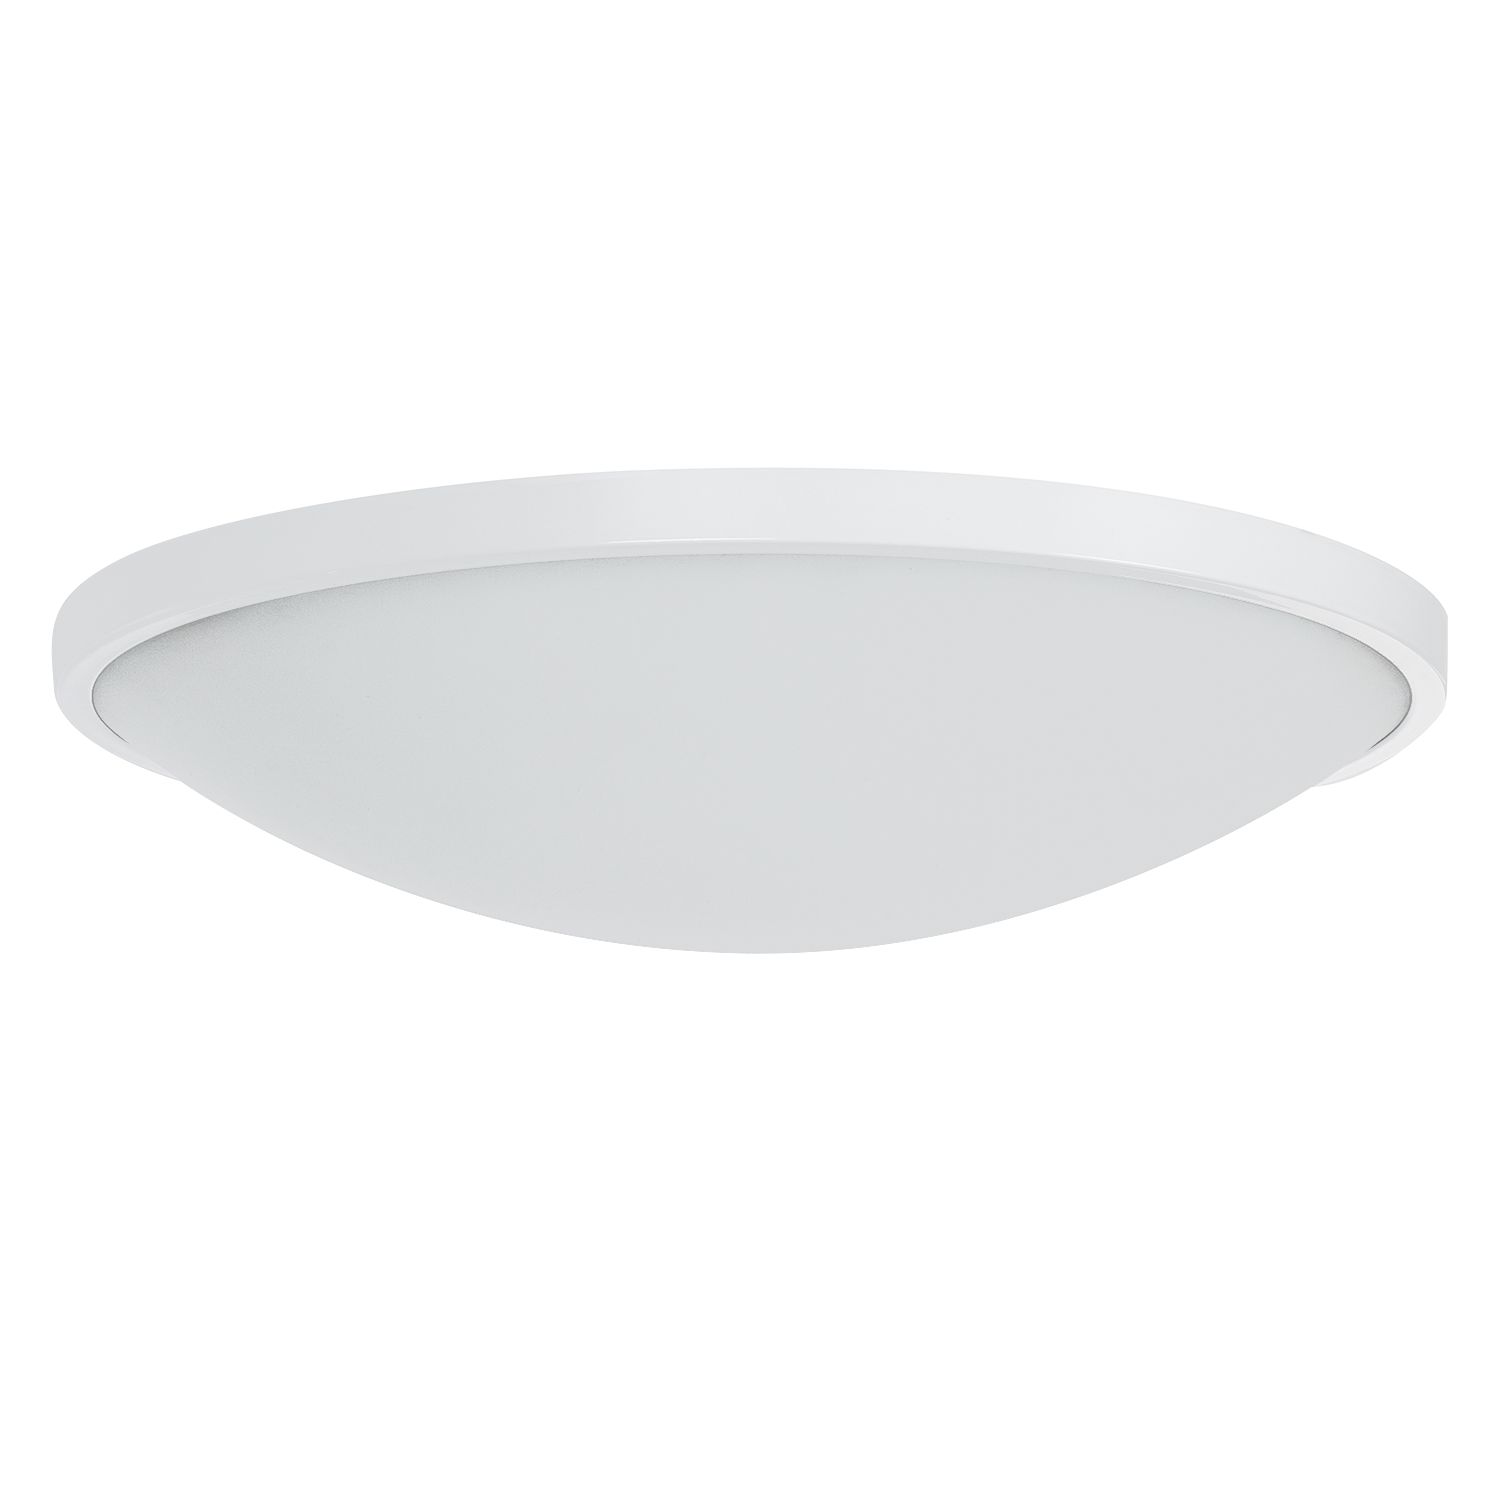 energie  A+, LED-plafondlamp Low - glas/staal wit 1 lichtbron, Lampadina